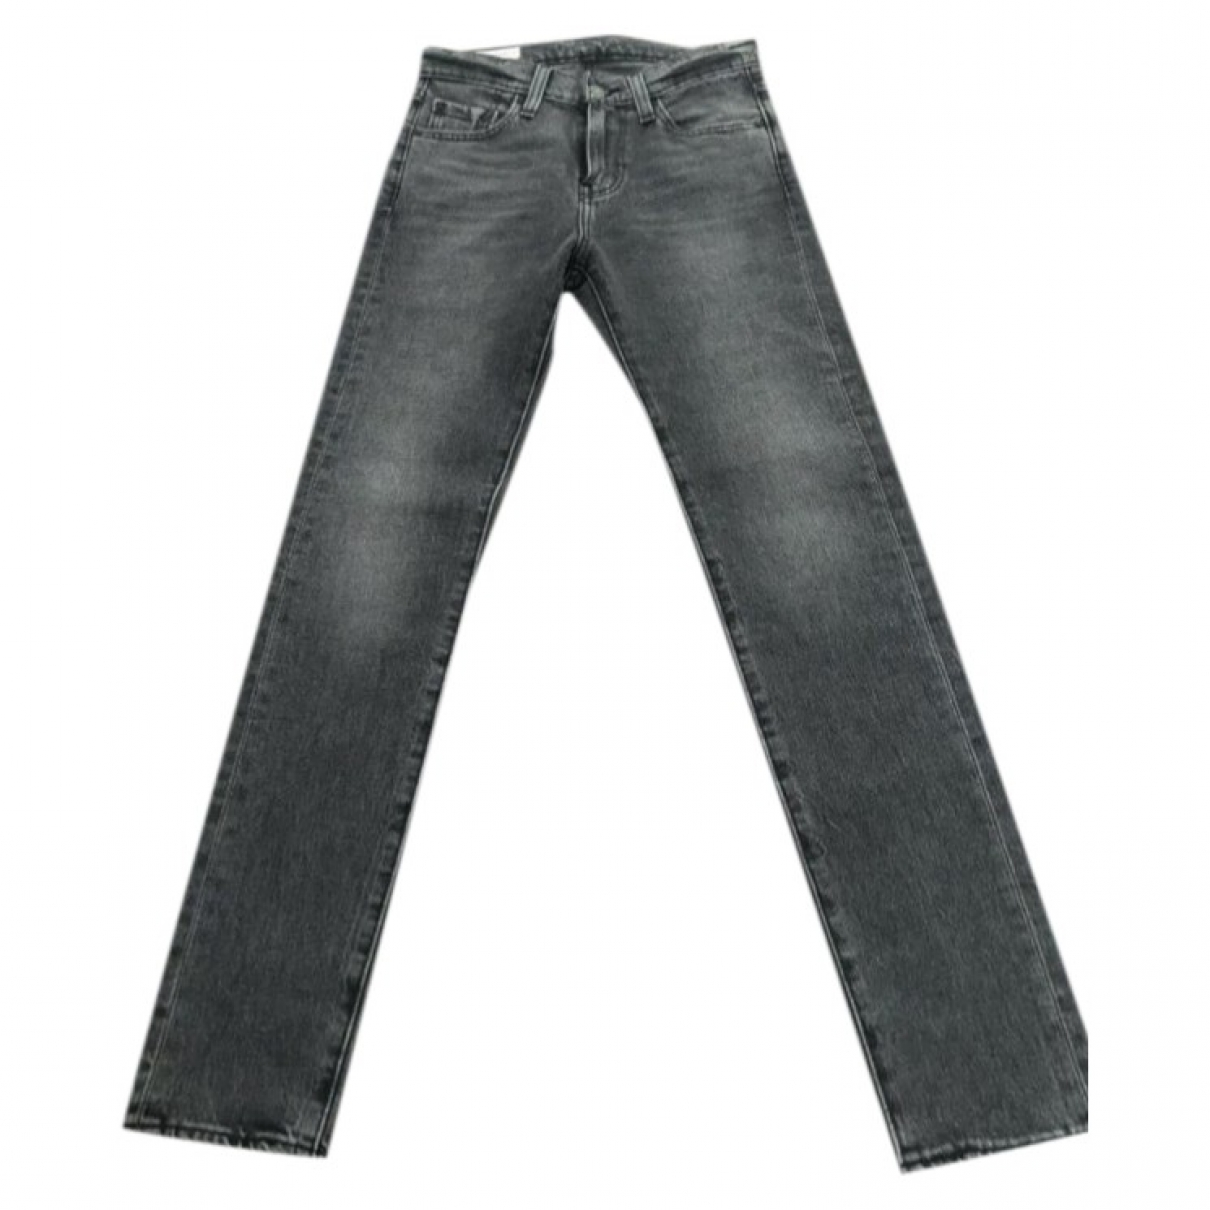 Levi's 501 Grey Cotton - elasthane Jeans for Women 26 US